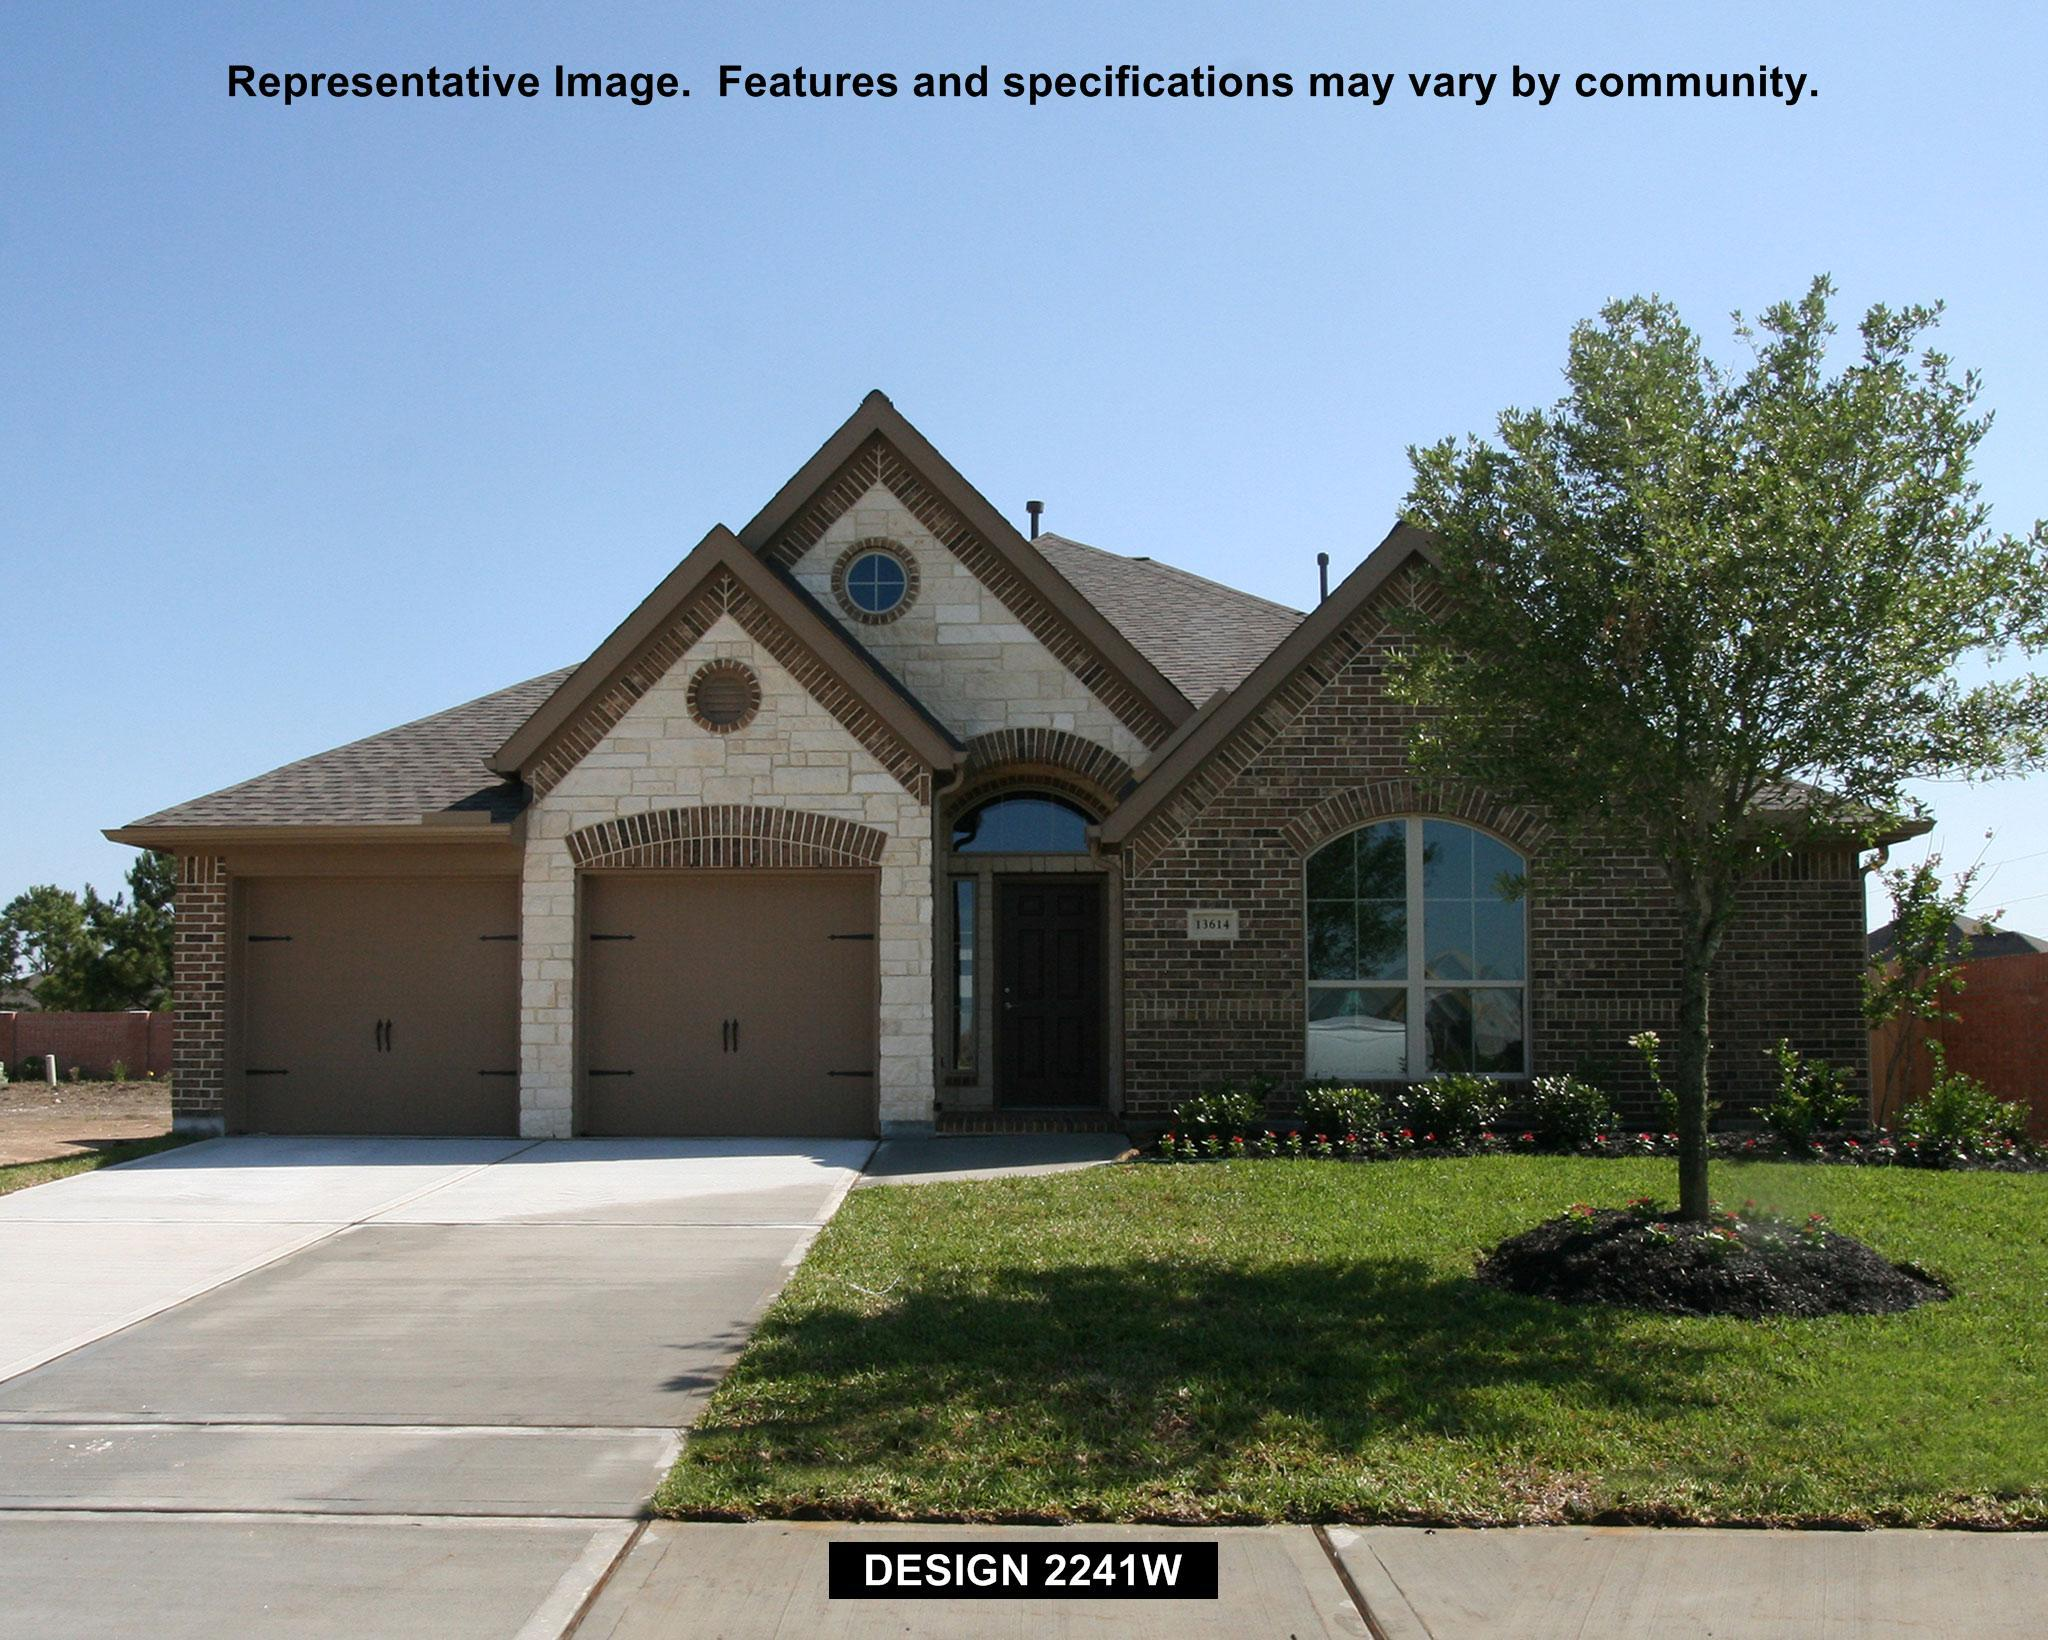 2241W - Firethorne: Firethorne 60': Katy, TX - Perry Homes